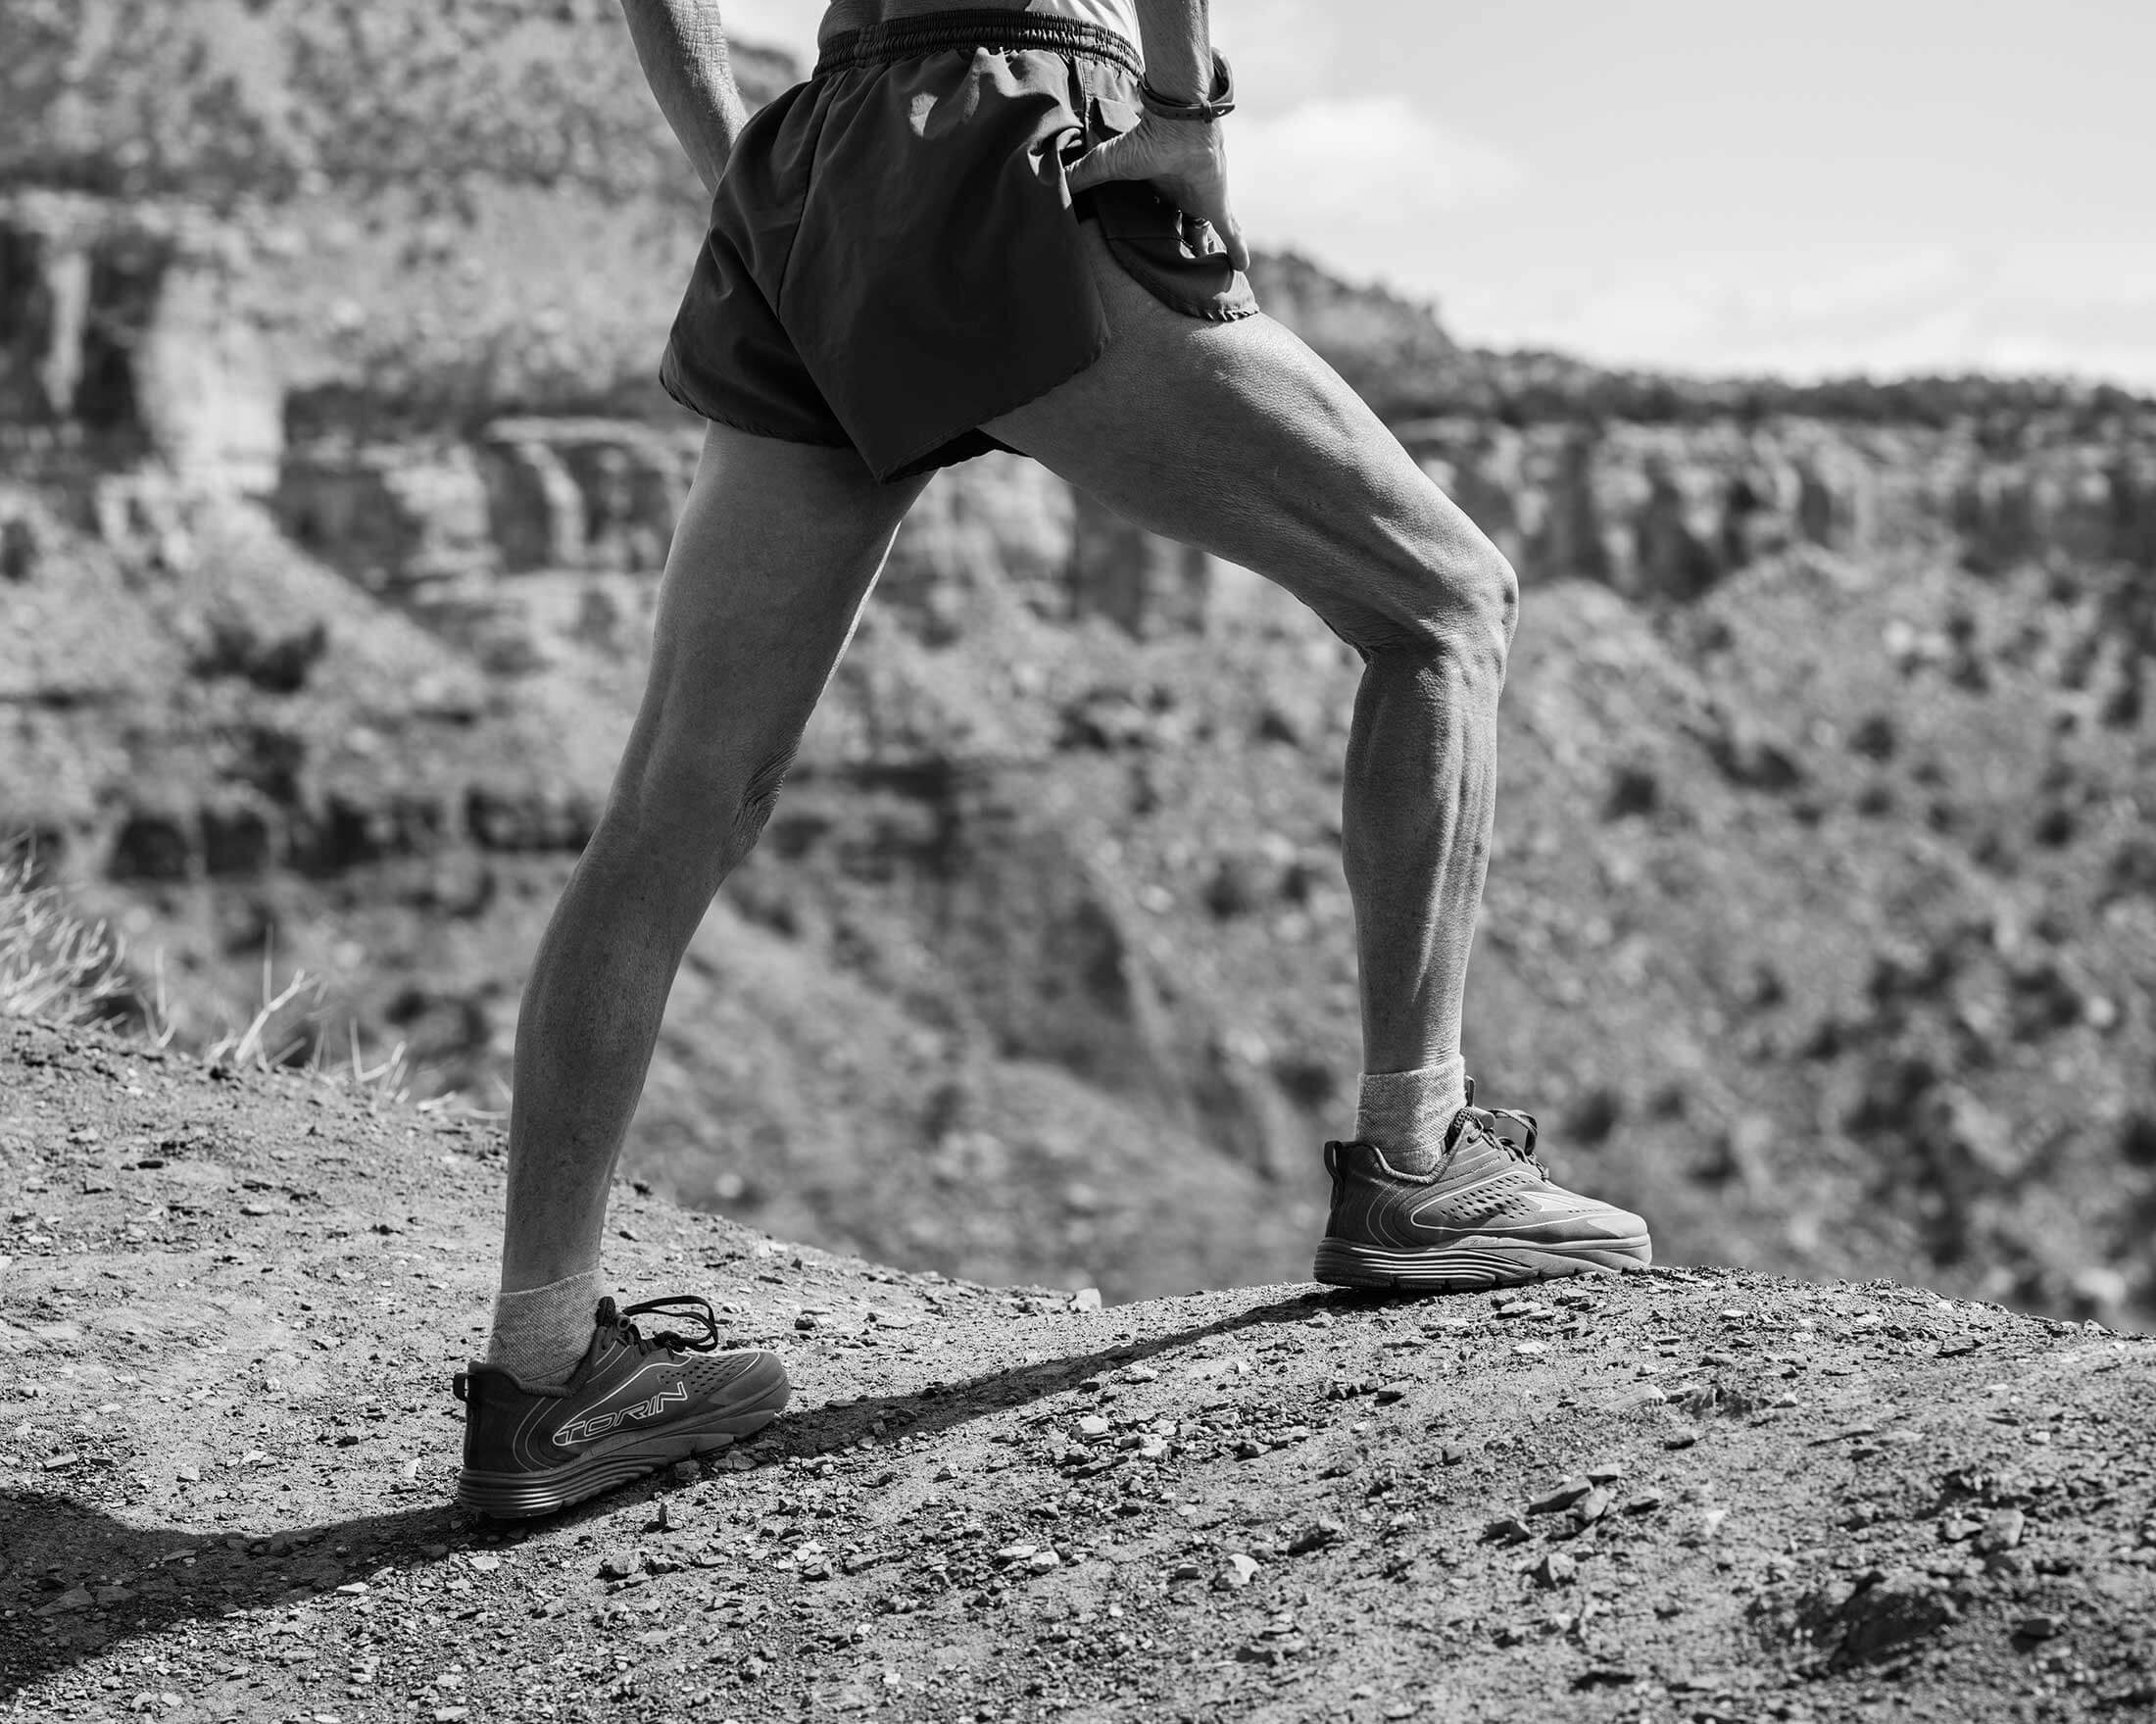 Reed stretches and practices yoga in the desert near Zion National Park the day before the ultramarathon.